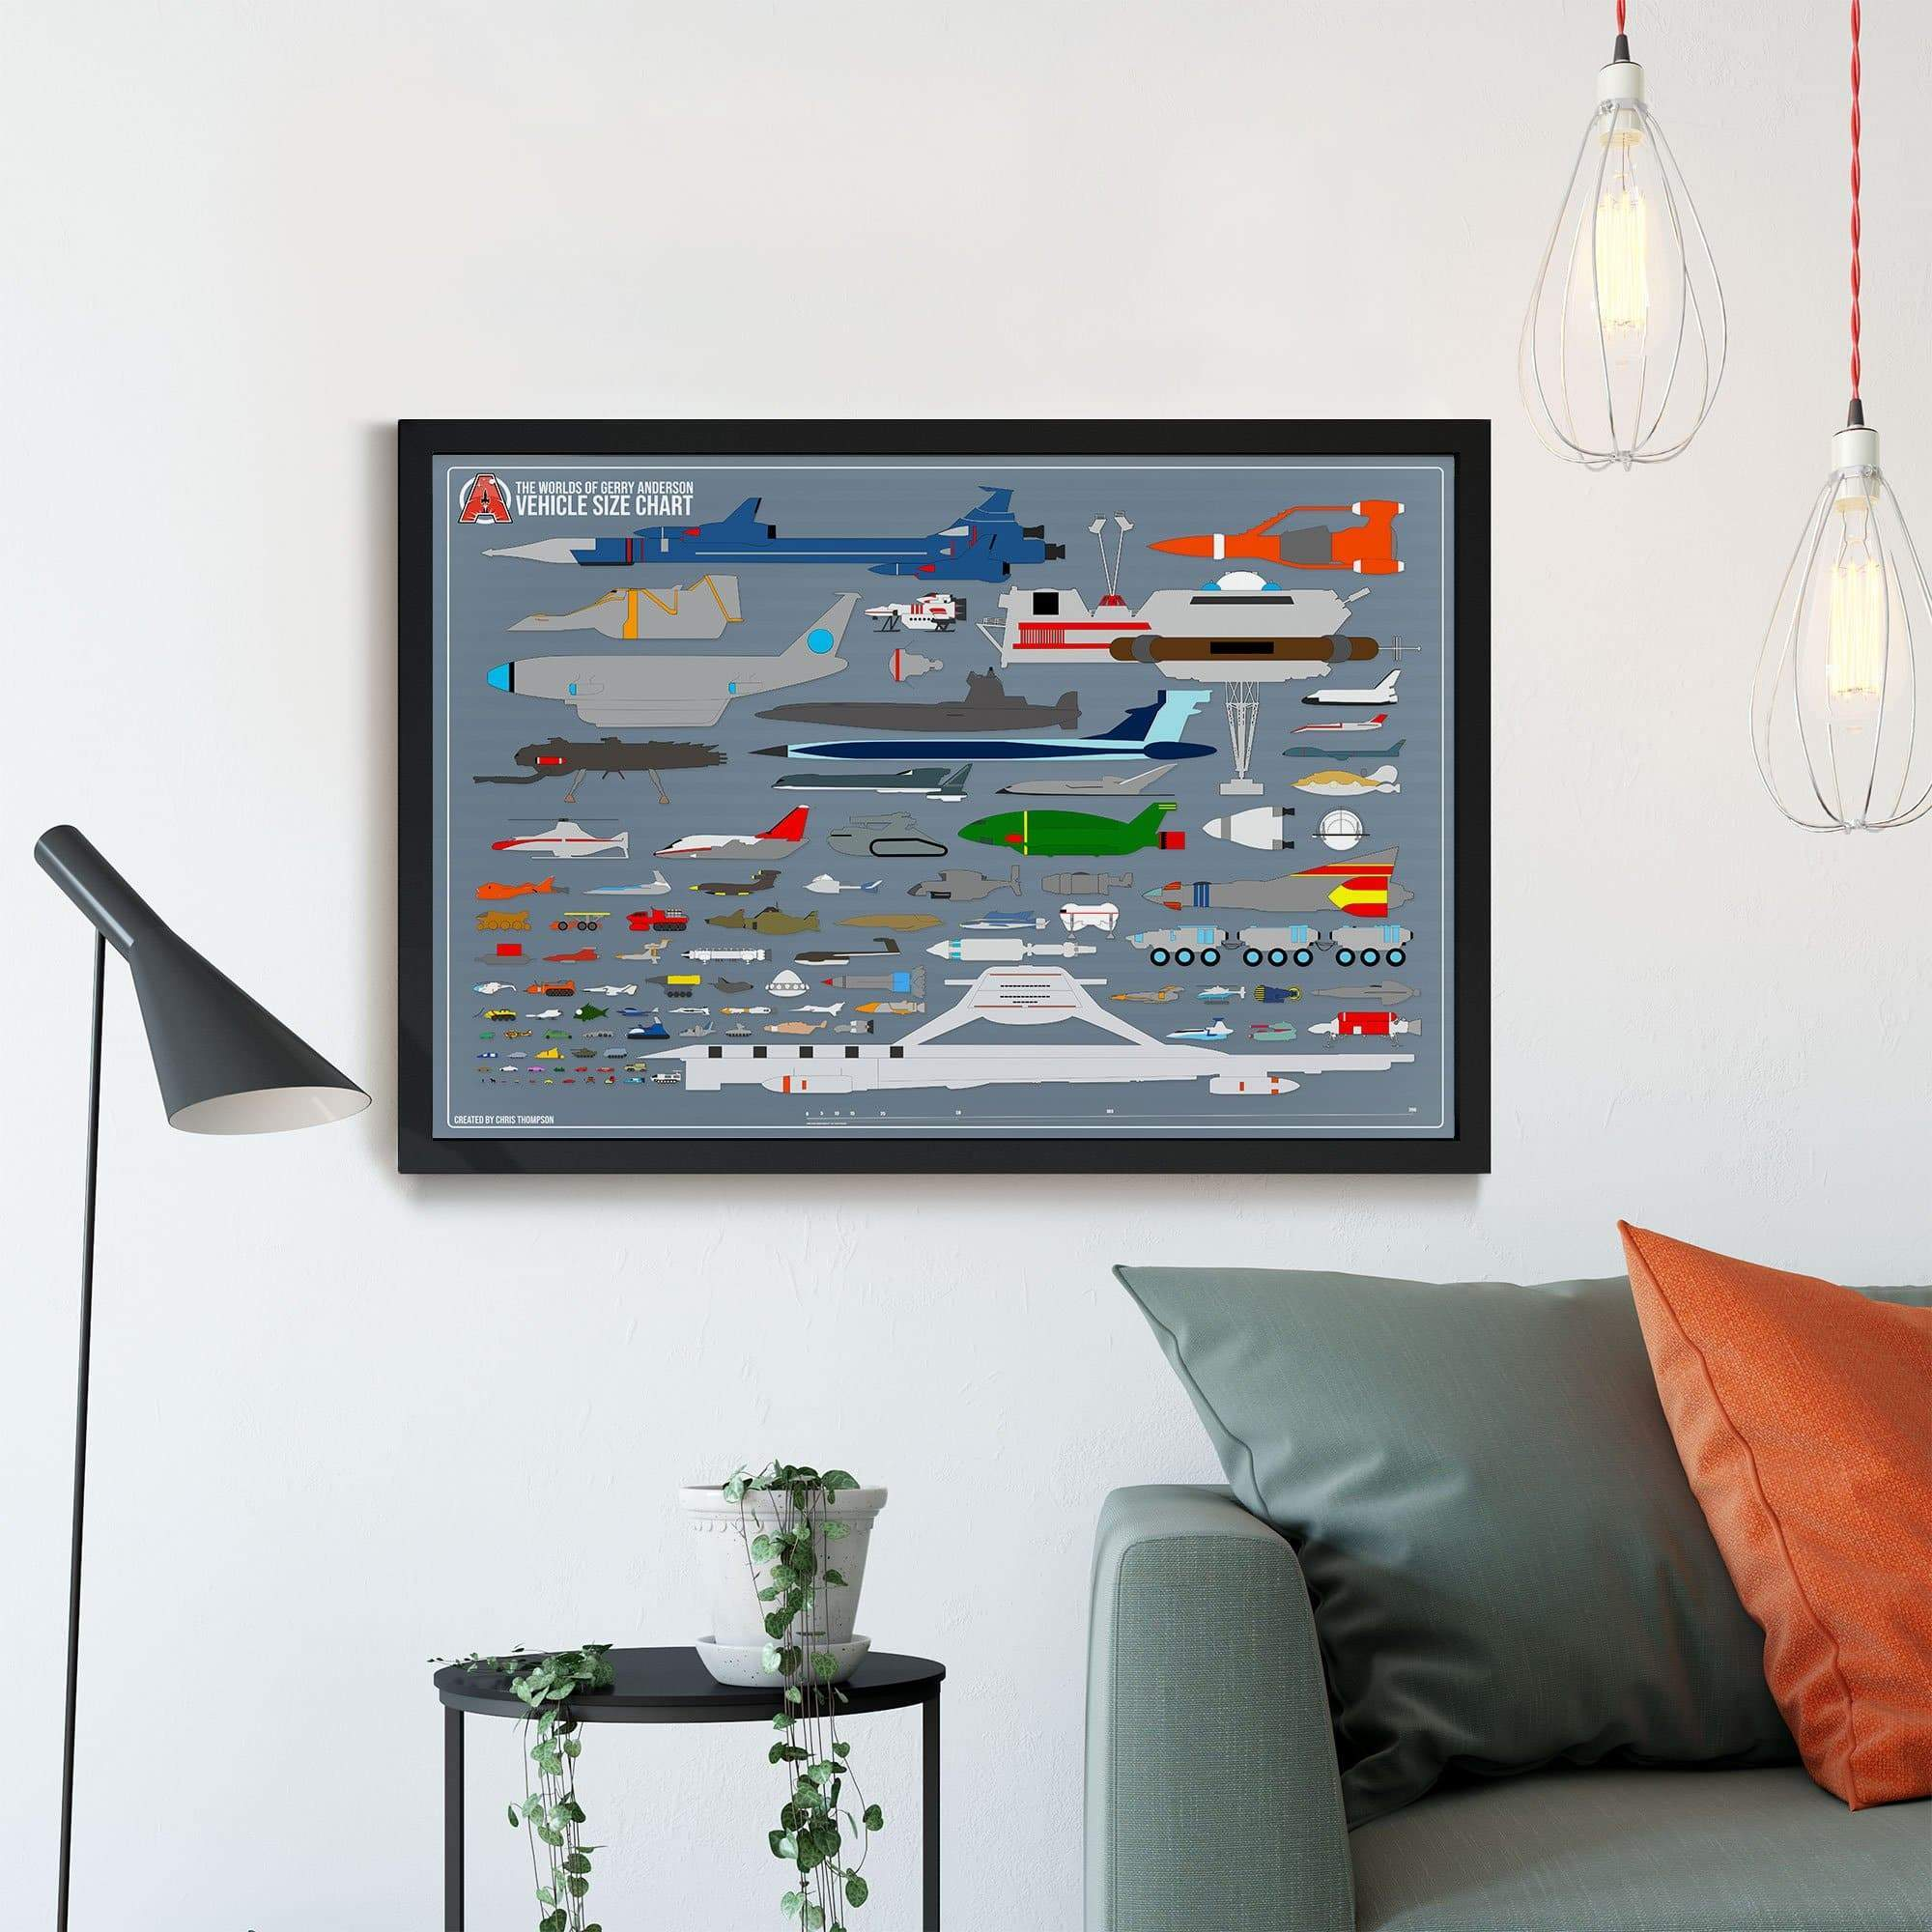 Gerry Anderson Vehicle Size Chart Framed Print - The Gerry Anderson Store